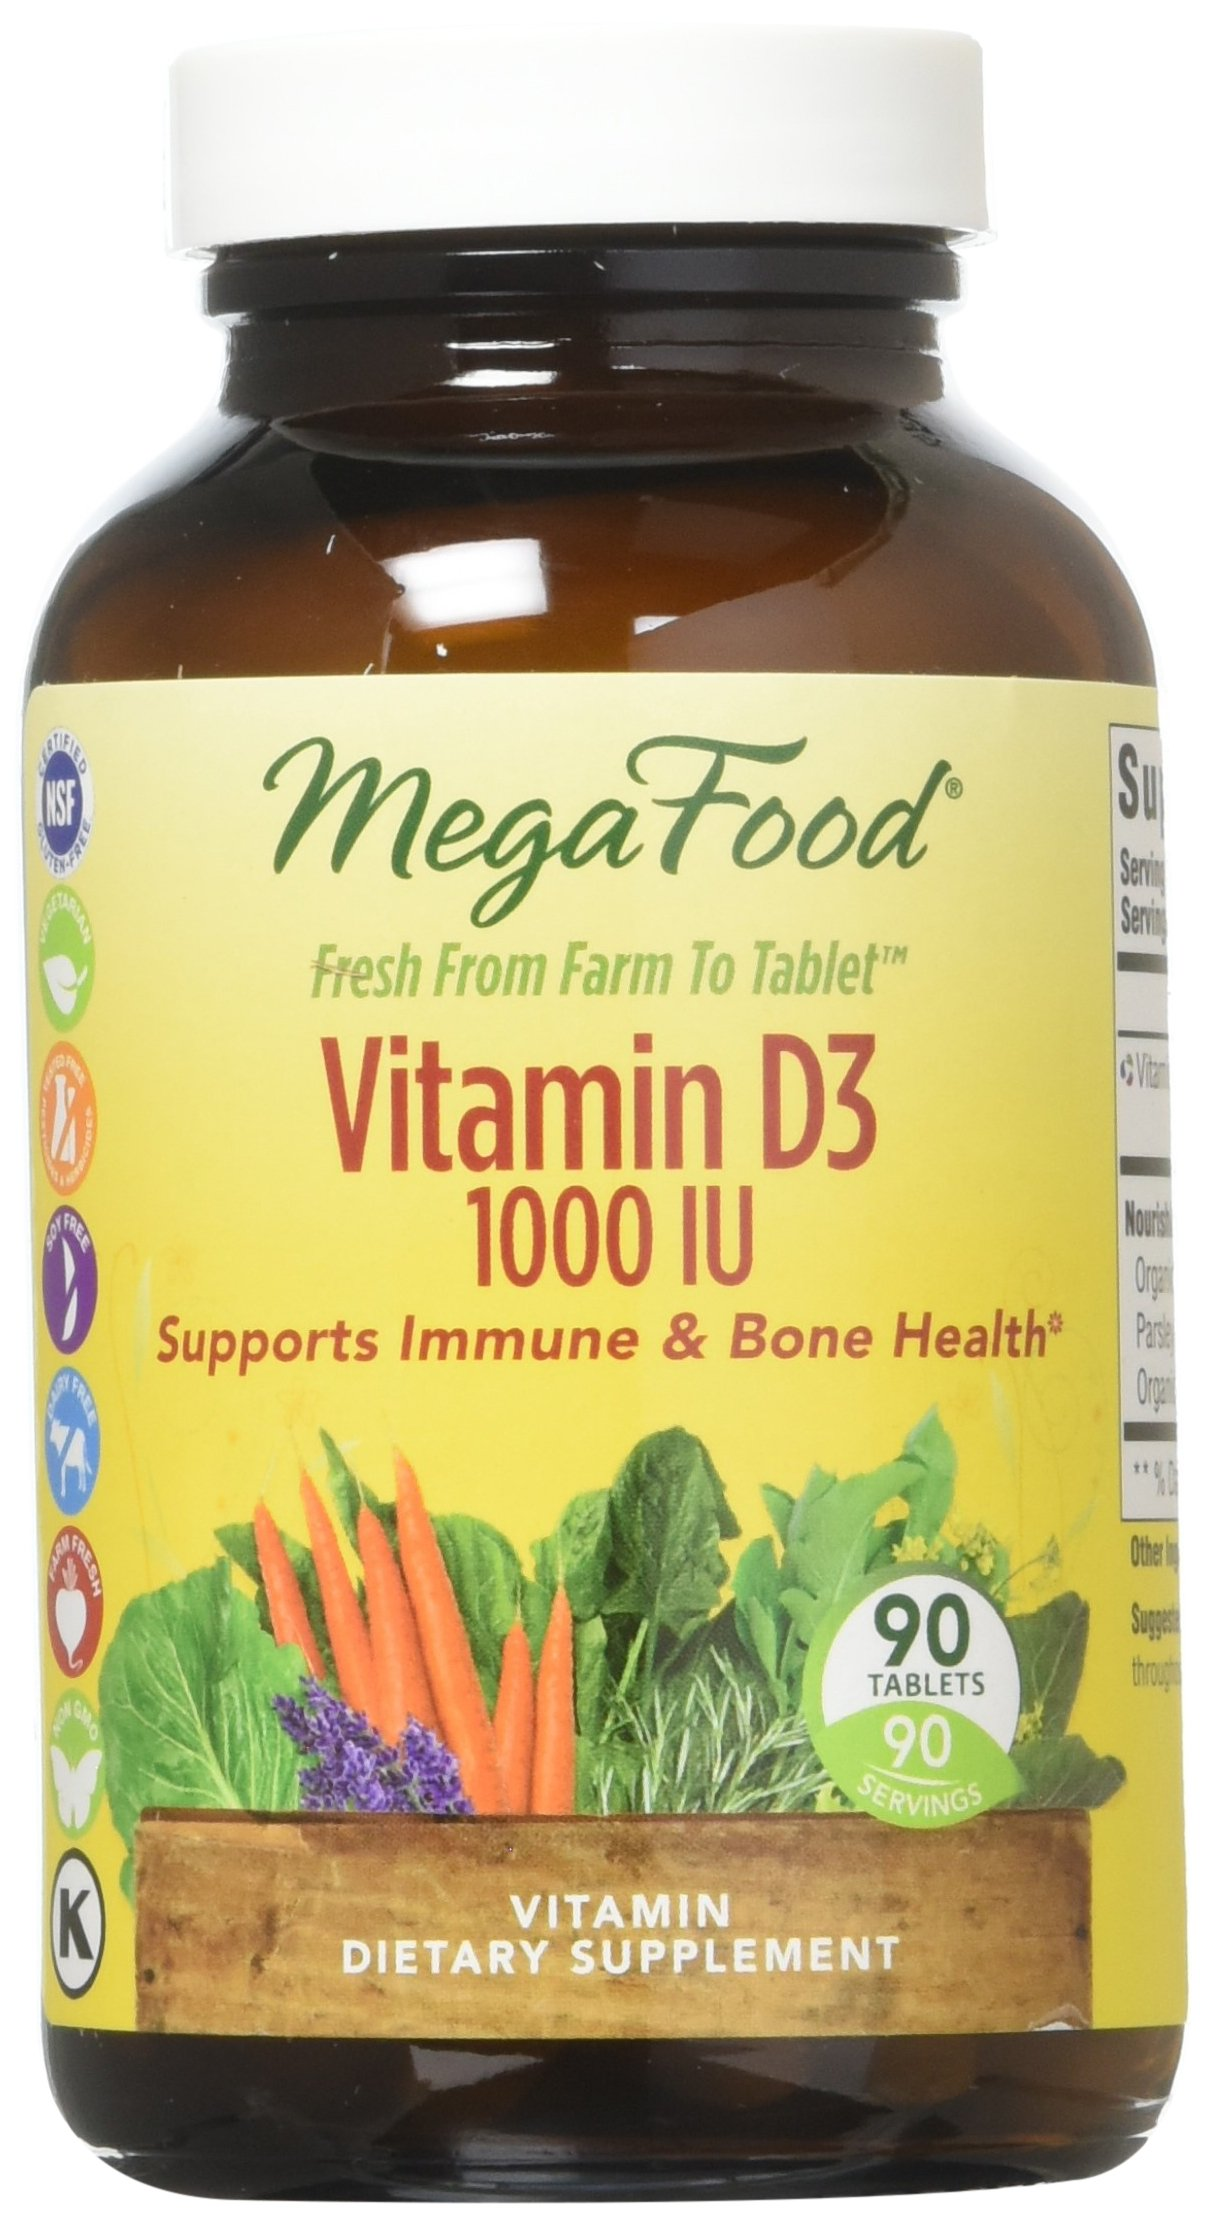 MegaFood - Vitamin D3 1000 IU, Support for Immune Health, Bone Strength, Hormone Production with Organic Herbs and Food, Vegetarian, Gluten-Free, Non-GMO, 90 Tablets (FFP)